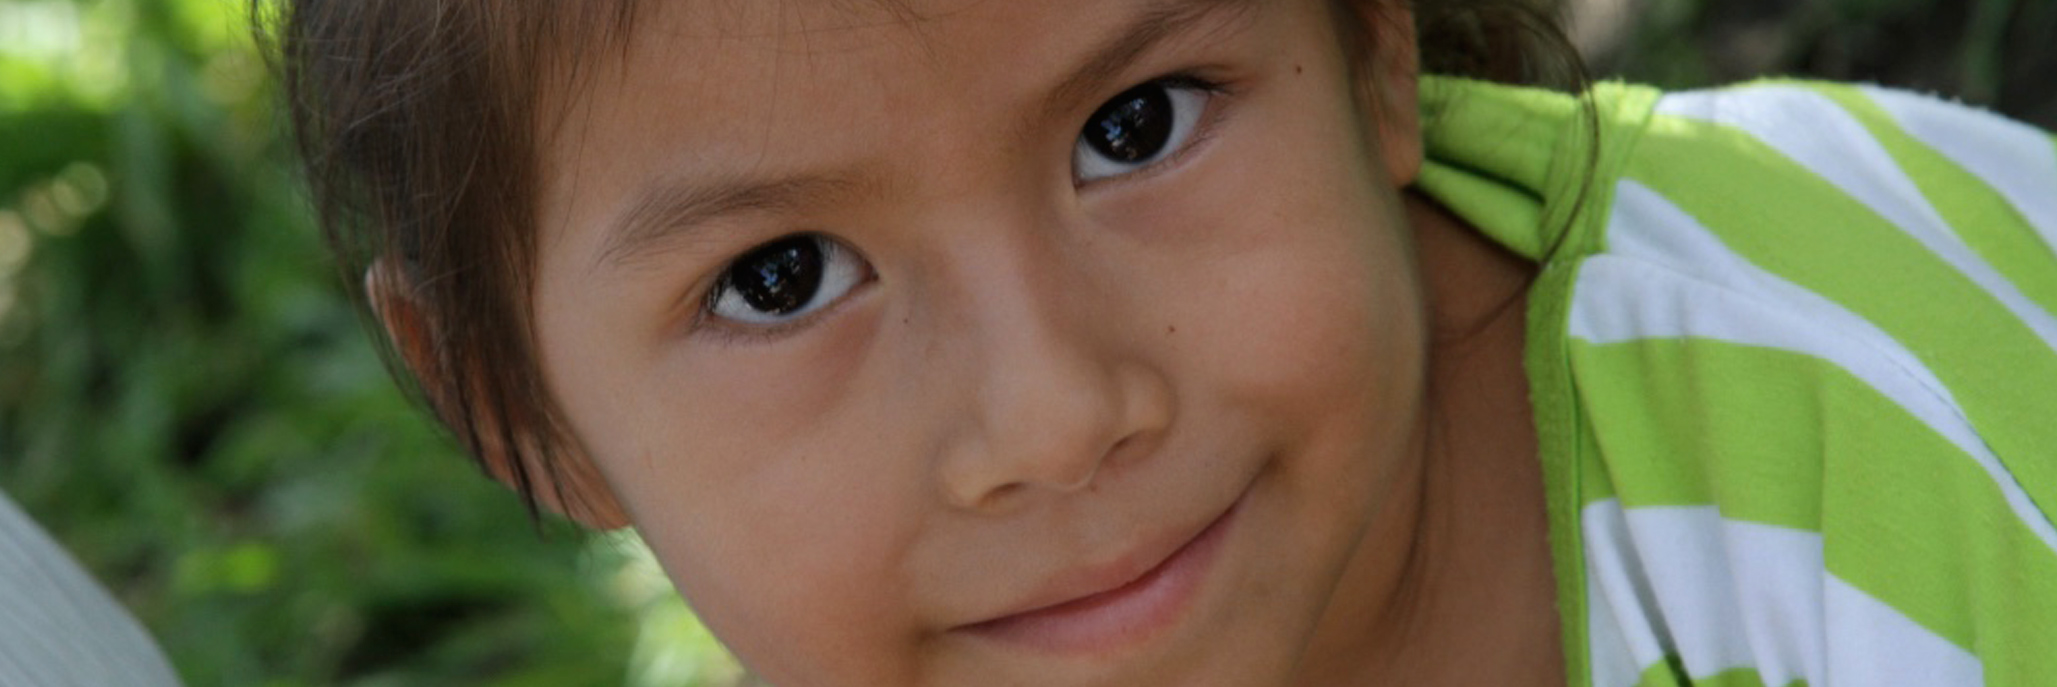 short-term-missions-girl.jpg